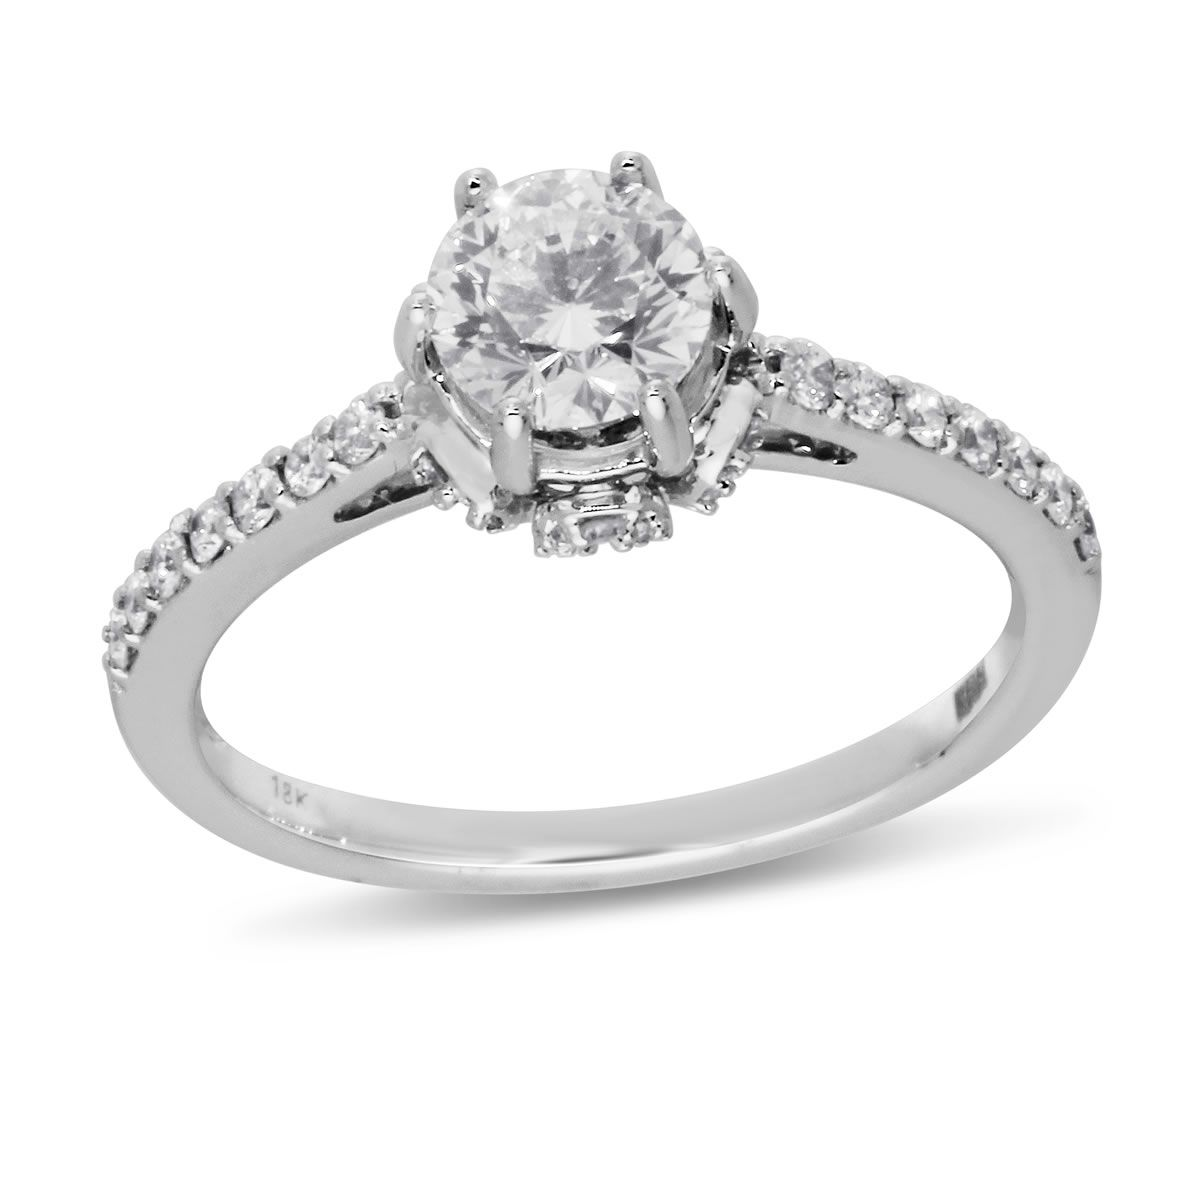 Brilliant Fire Collection 14k White Gold Round SI2 Diamond Ring 1